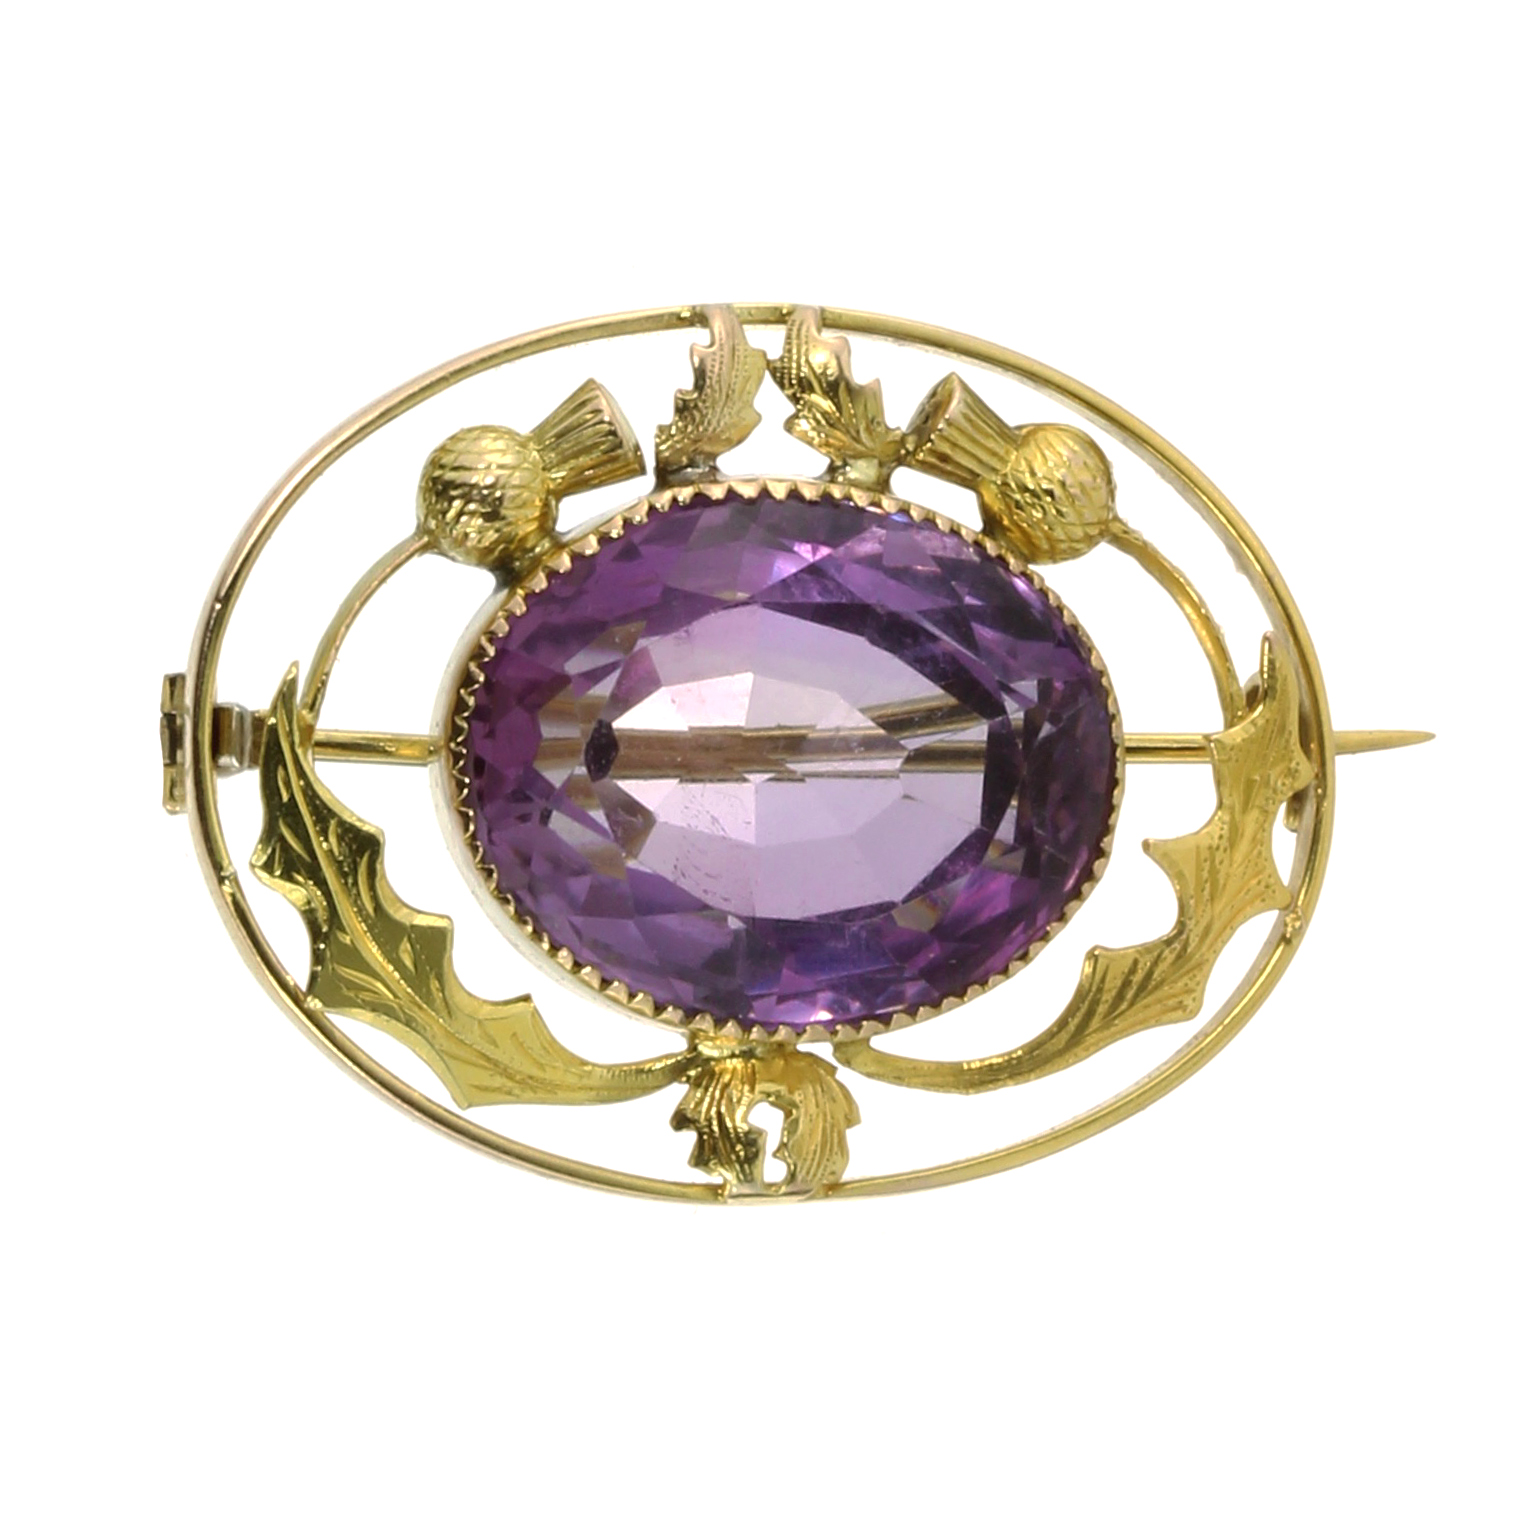 Los 33 - AN ANTIQUE SCOTTISH AMETHYST THISTLE BROOCH set with a large oval cut amethyst of 15.35 carats